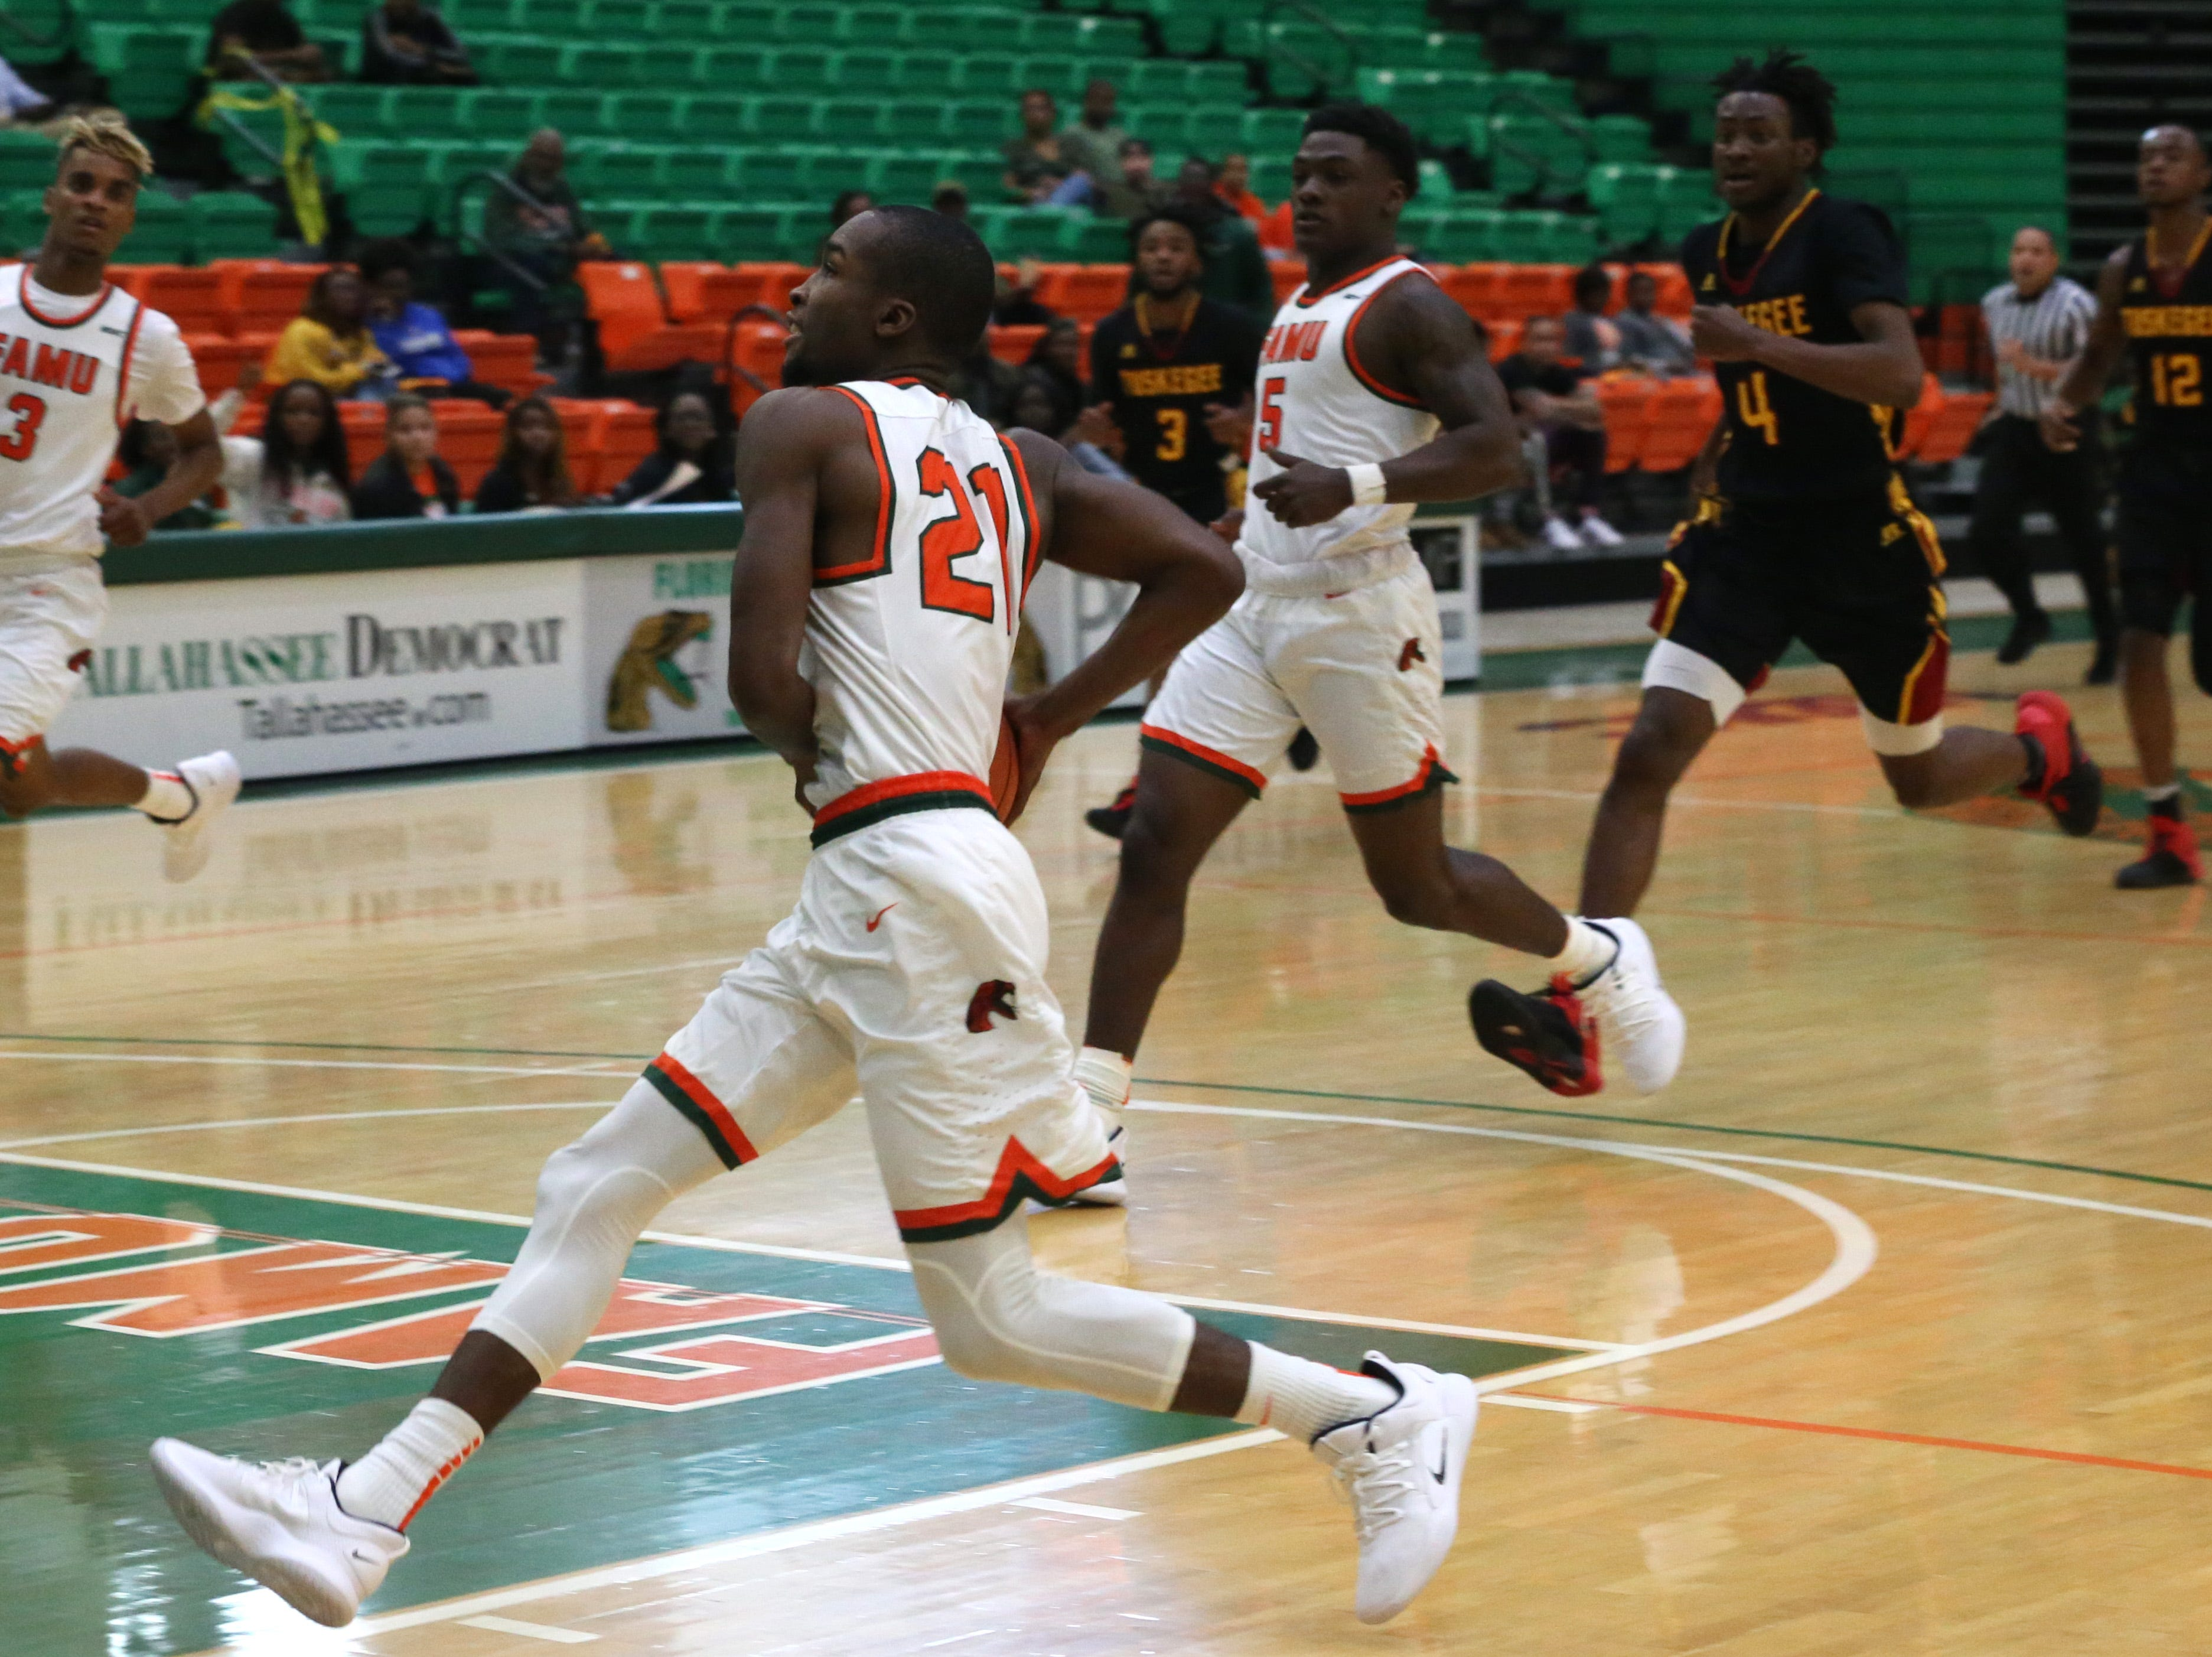 Florida A&M Rattlers guard Justin Ravenel (21) goes to dunk as the FAMU Rattlers take on the Tuskegee Golden Tigers in their first home game of the season in the Lawson Center, Saturday, Nov. 10, 2018.